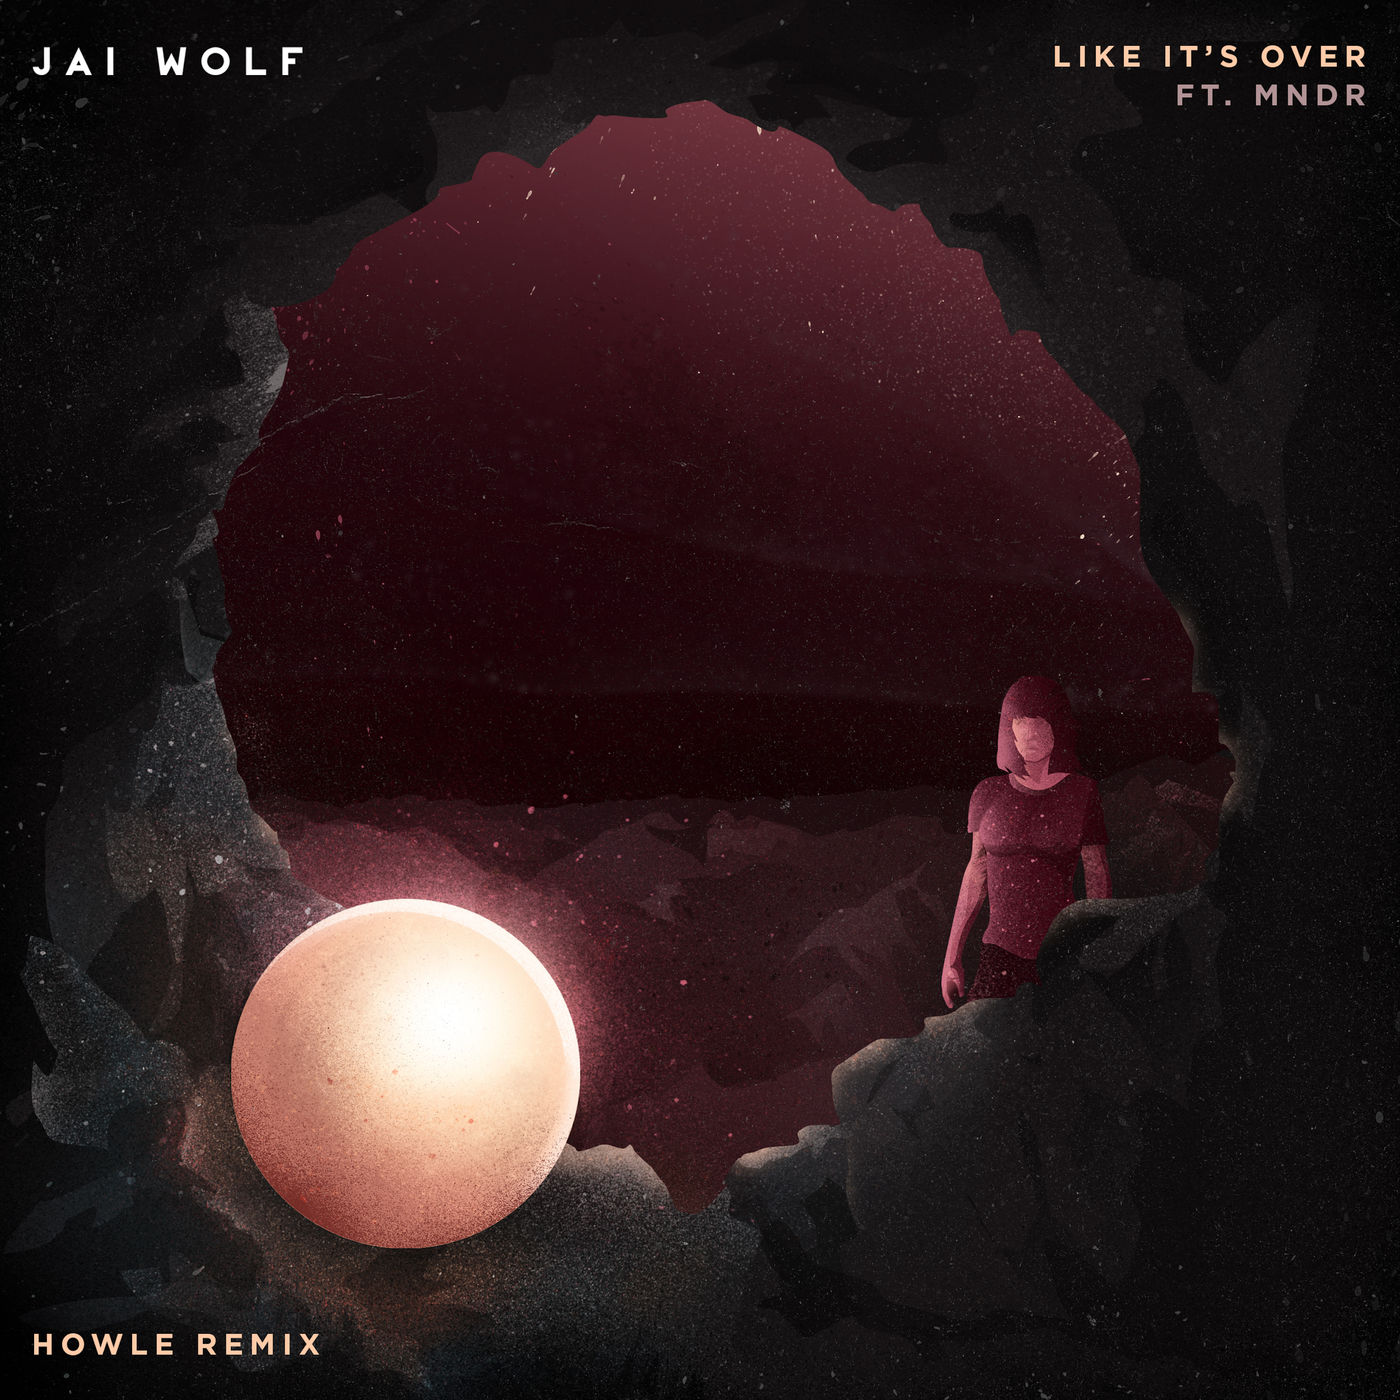 Jai Wolf - Like It´s Over (Howle Remix) [feat. MNDR] - Single Cover